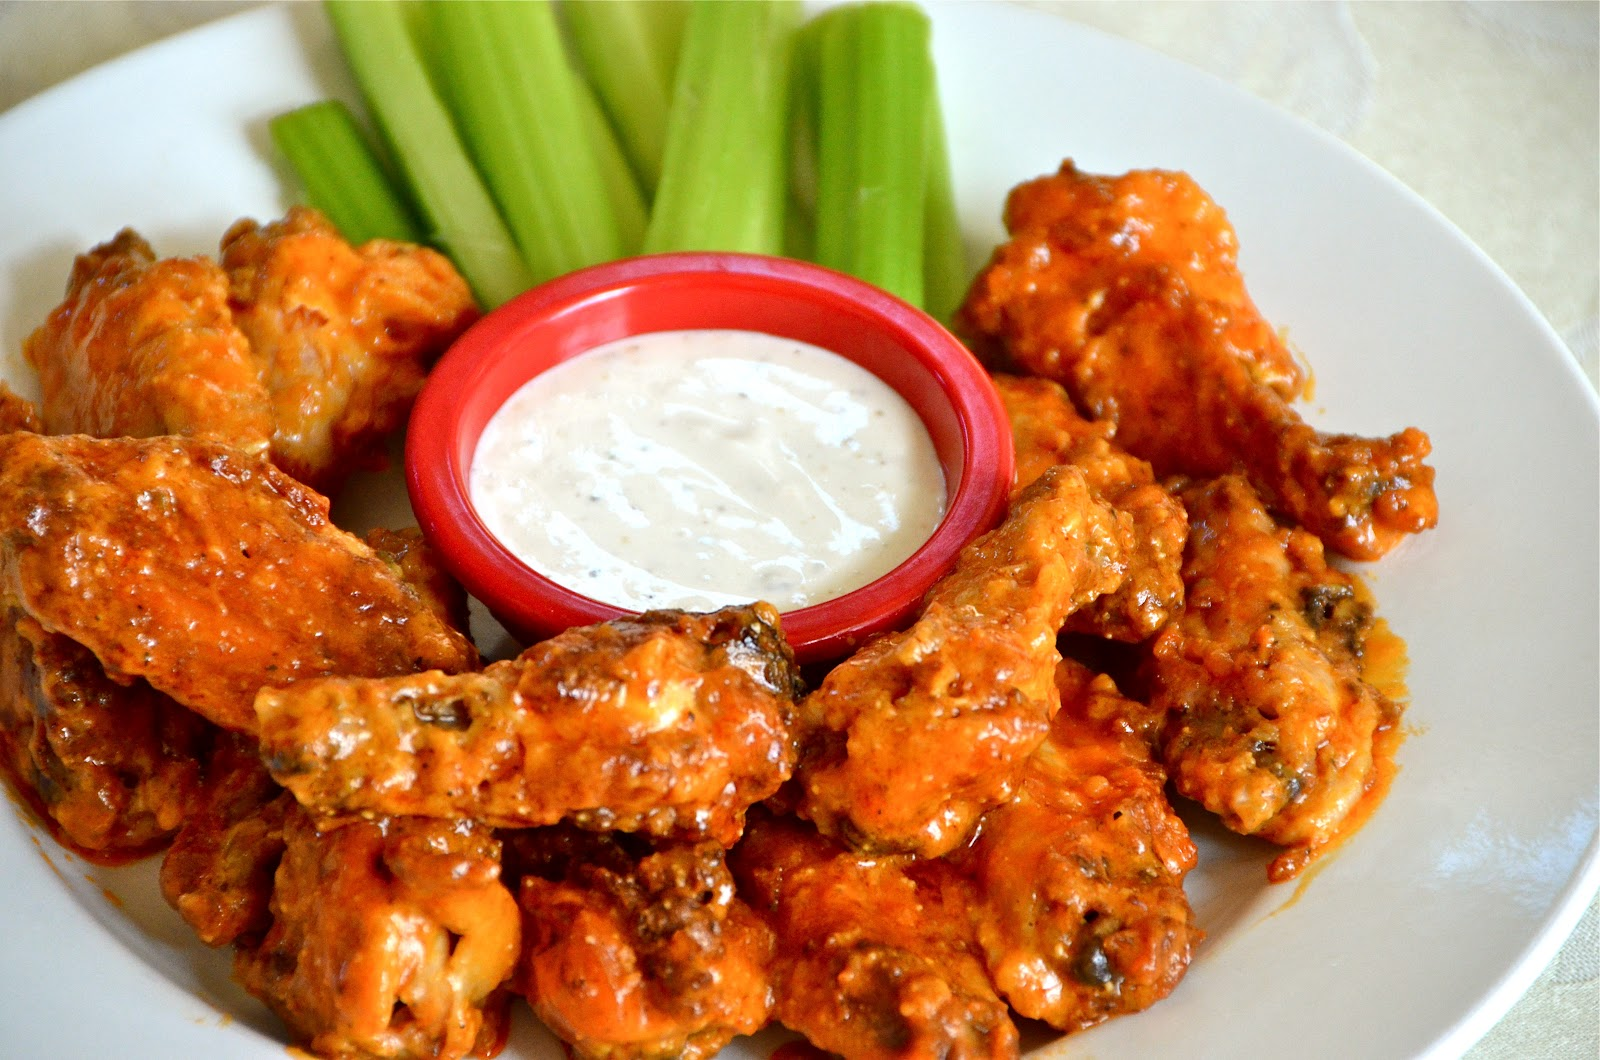 Buffalo Wings Labeled for Reuse